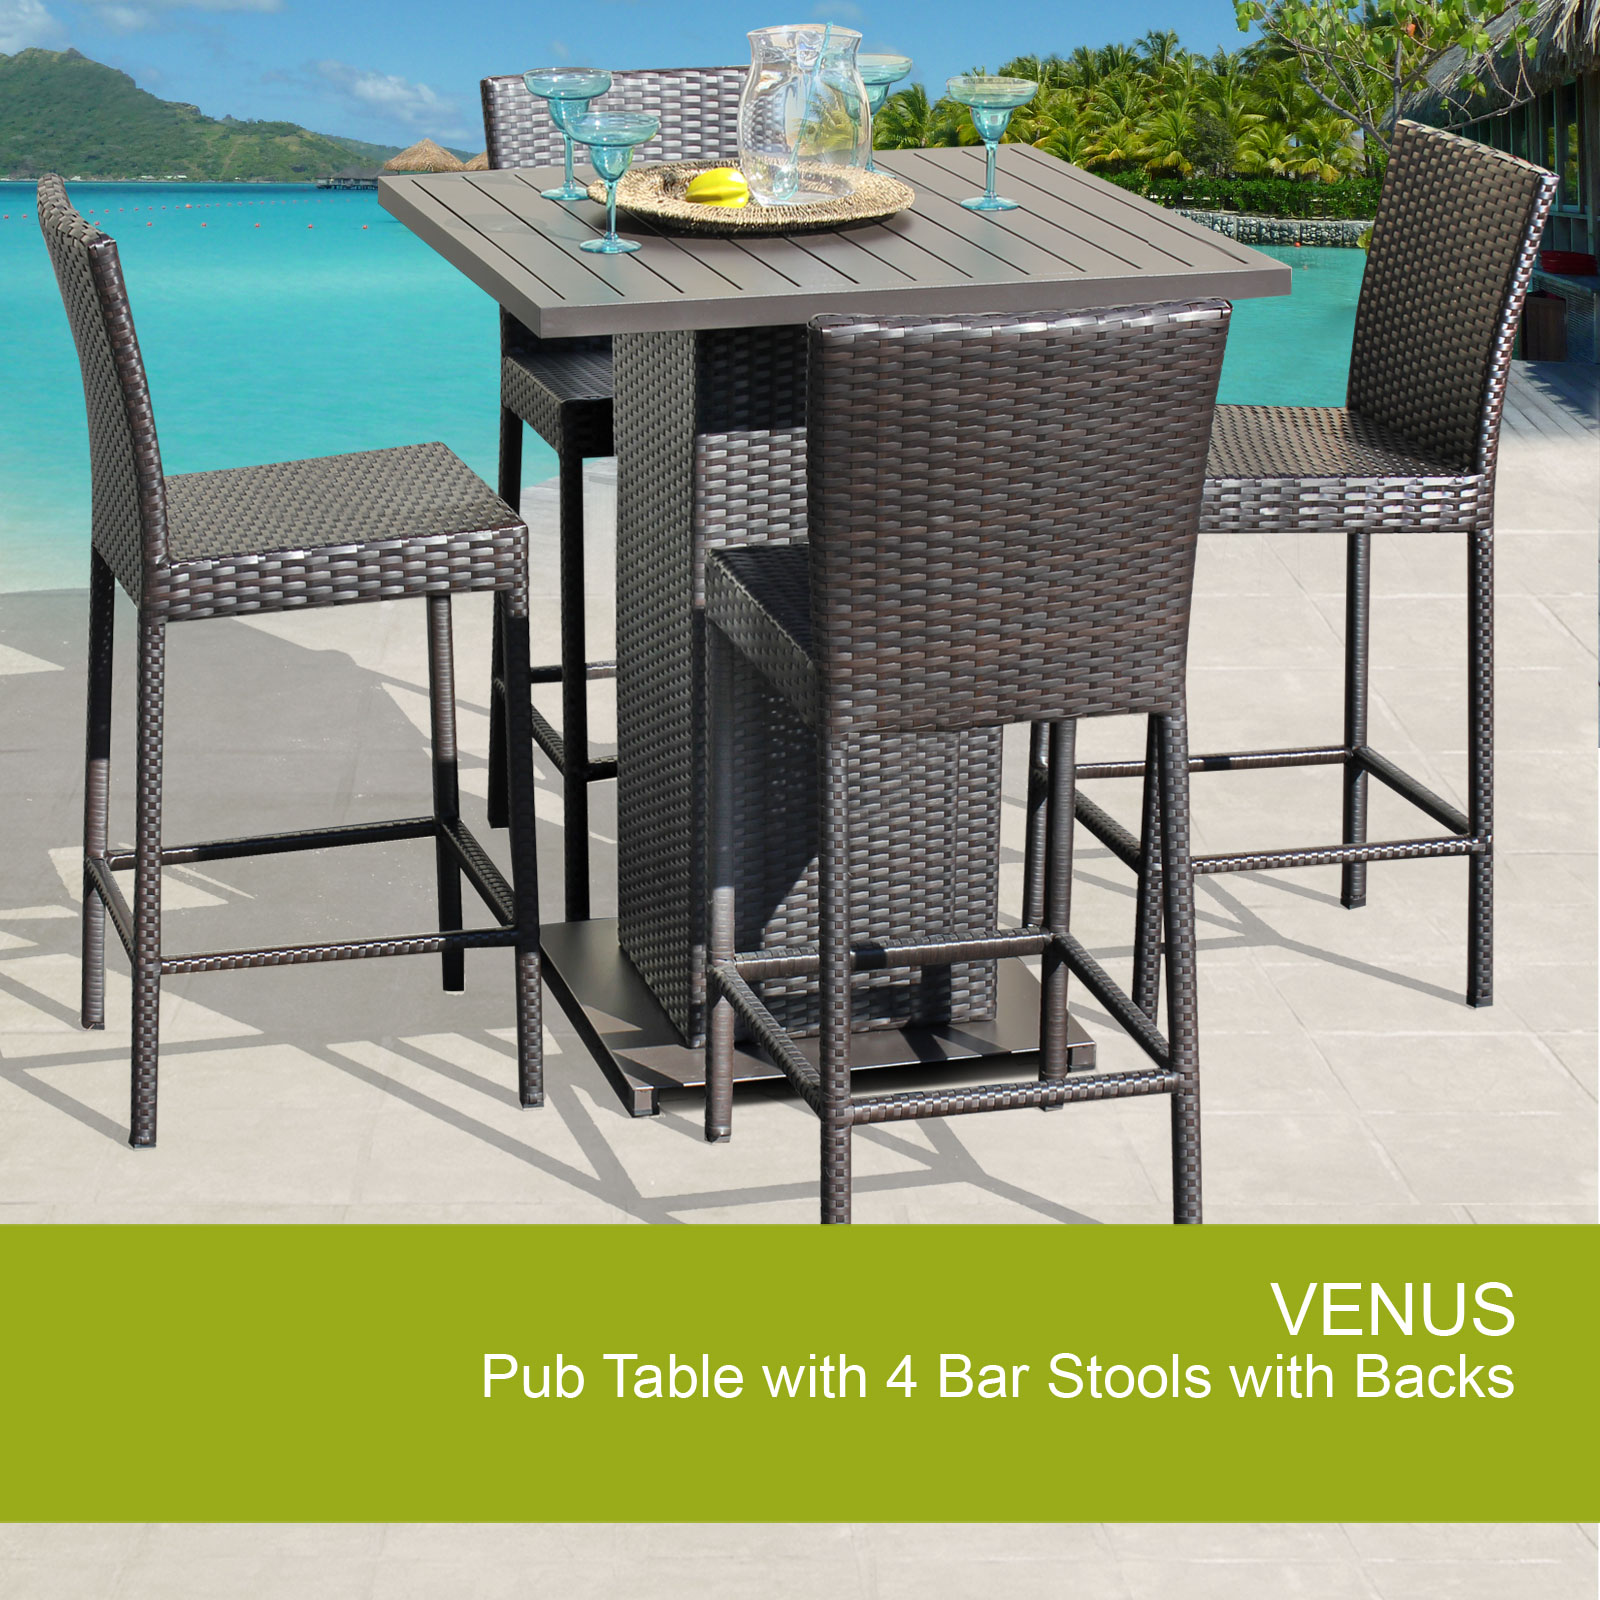 outdoor bar table and chairs bean bag chair target venus pub set with barstools 5 piece wicker patio furniture walmart com